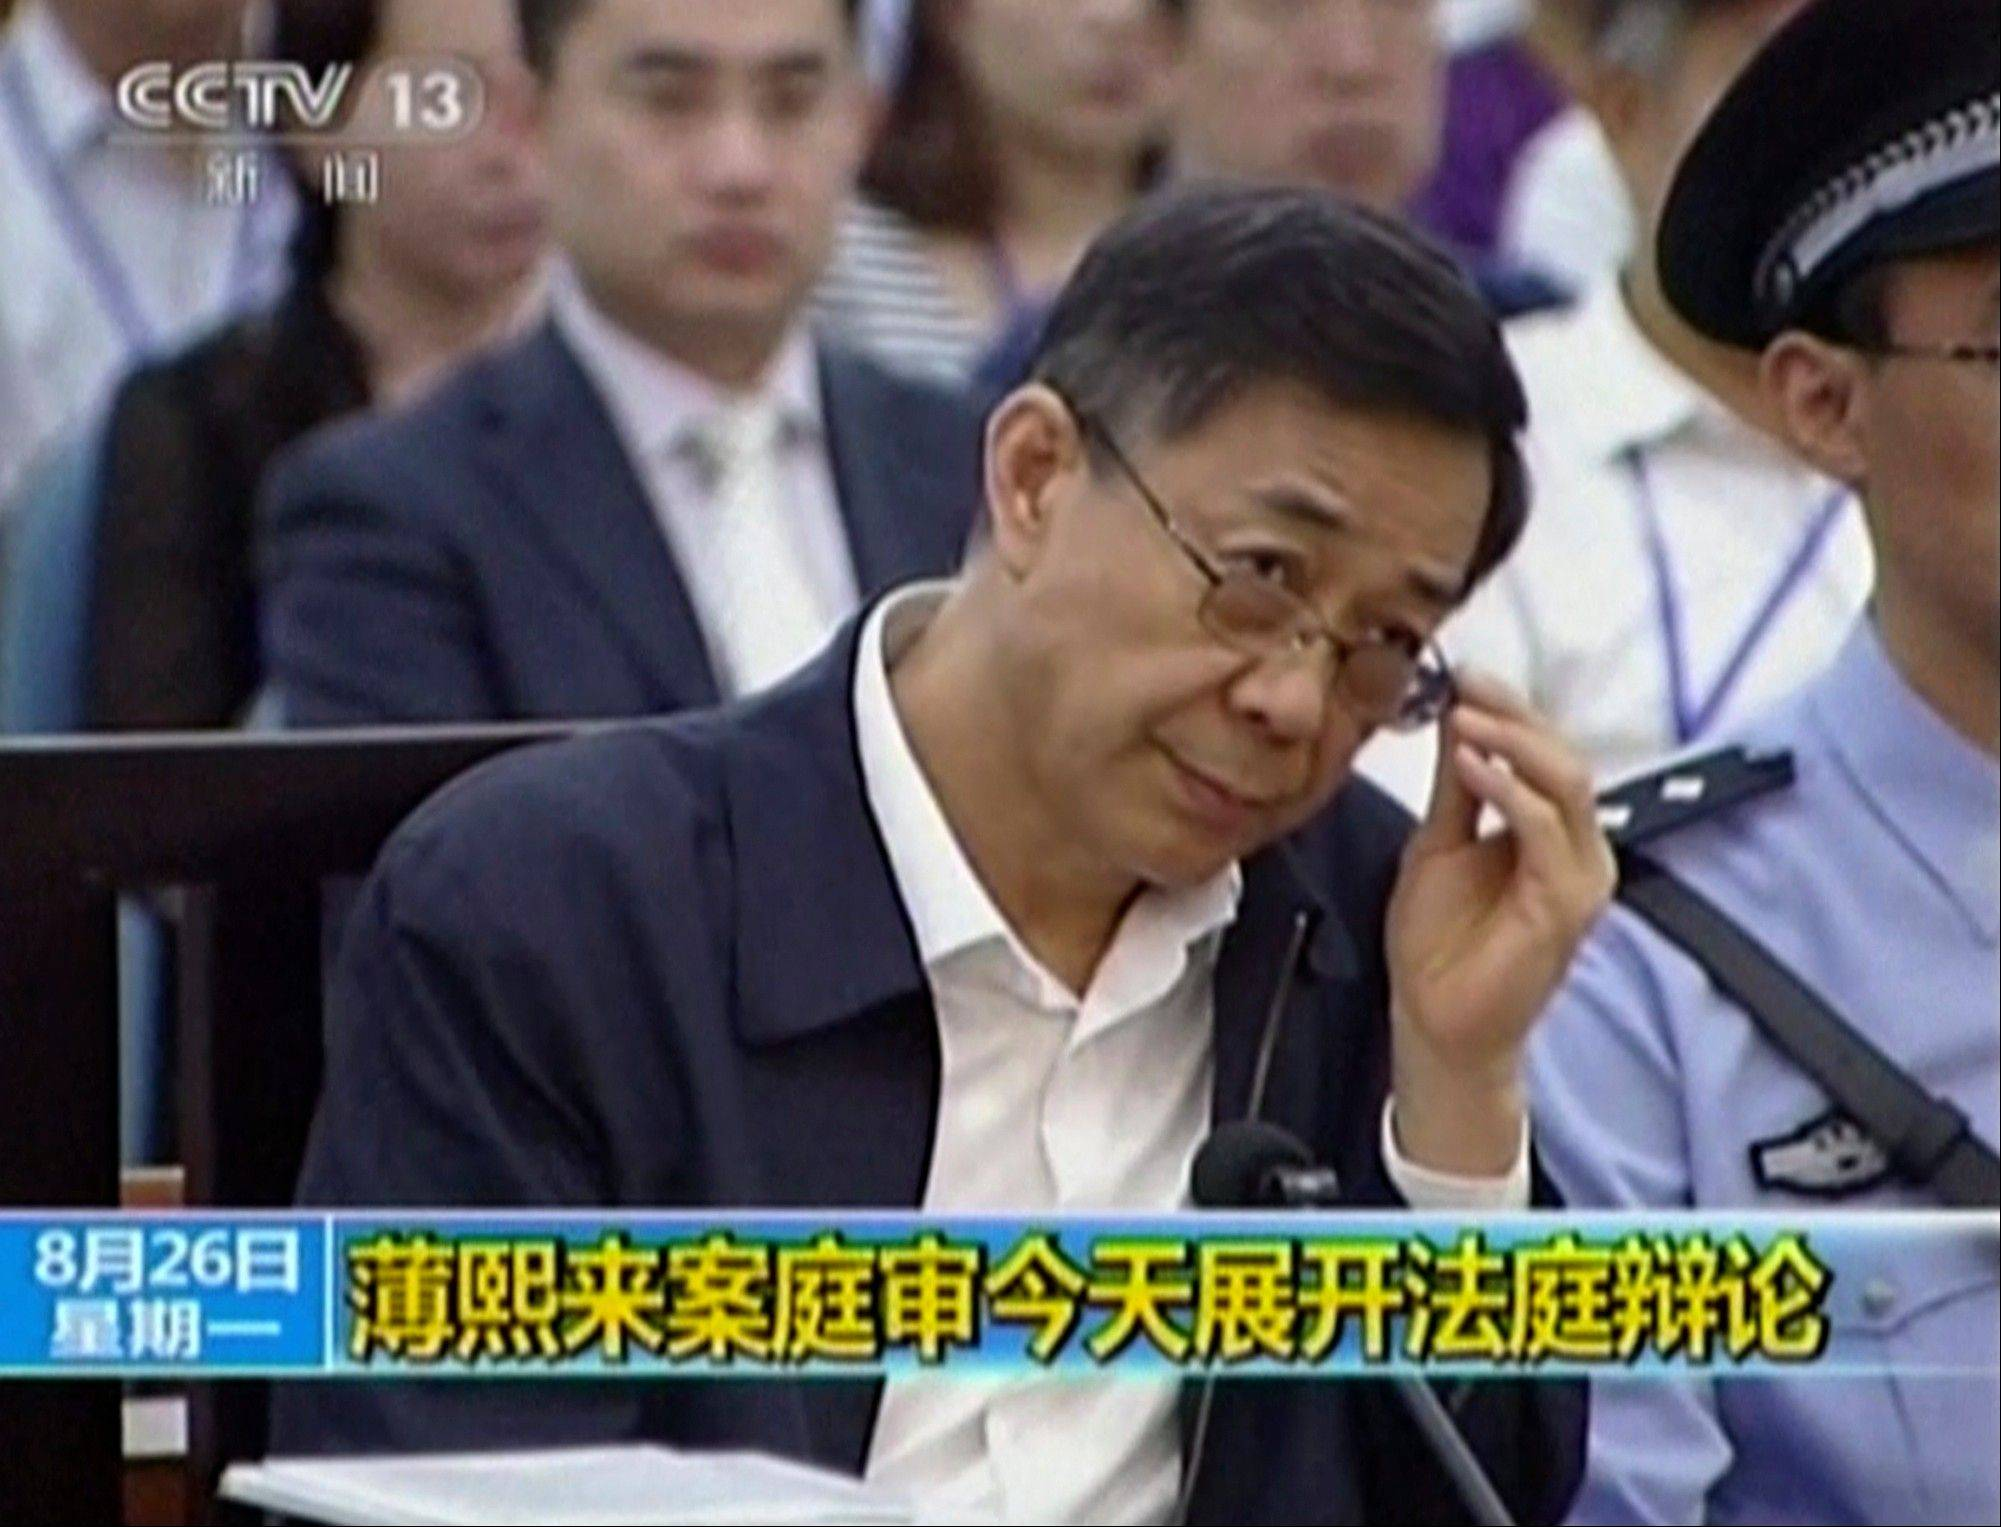 In this image taken from video, former Chinese politician Bo Xilai looks up in a courtroom at Jinan Intermediate People's Court in Jinan, eastern China's Shandong province, Monday. A prosecutor urged a Chinese court Monday to punish disgraced politician Bo with a severe sentence because of his lack of remorse over alleged corruption and abuse of power, in a trial that has offered a glimpse into the shady inner workings of China's elite.